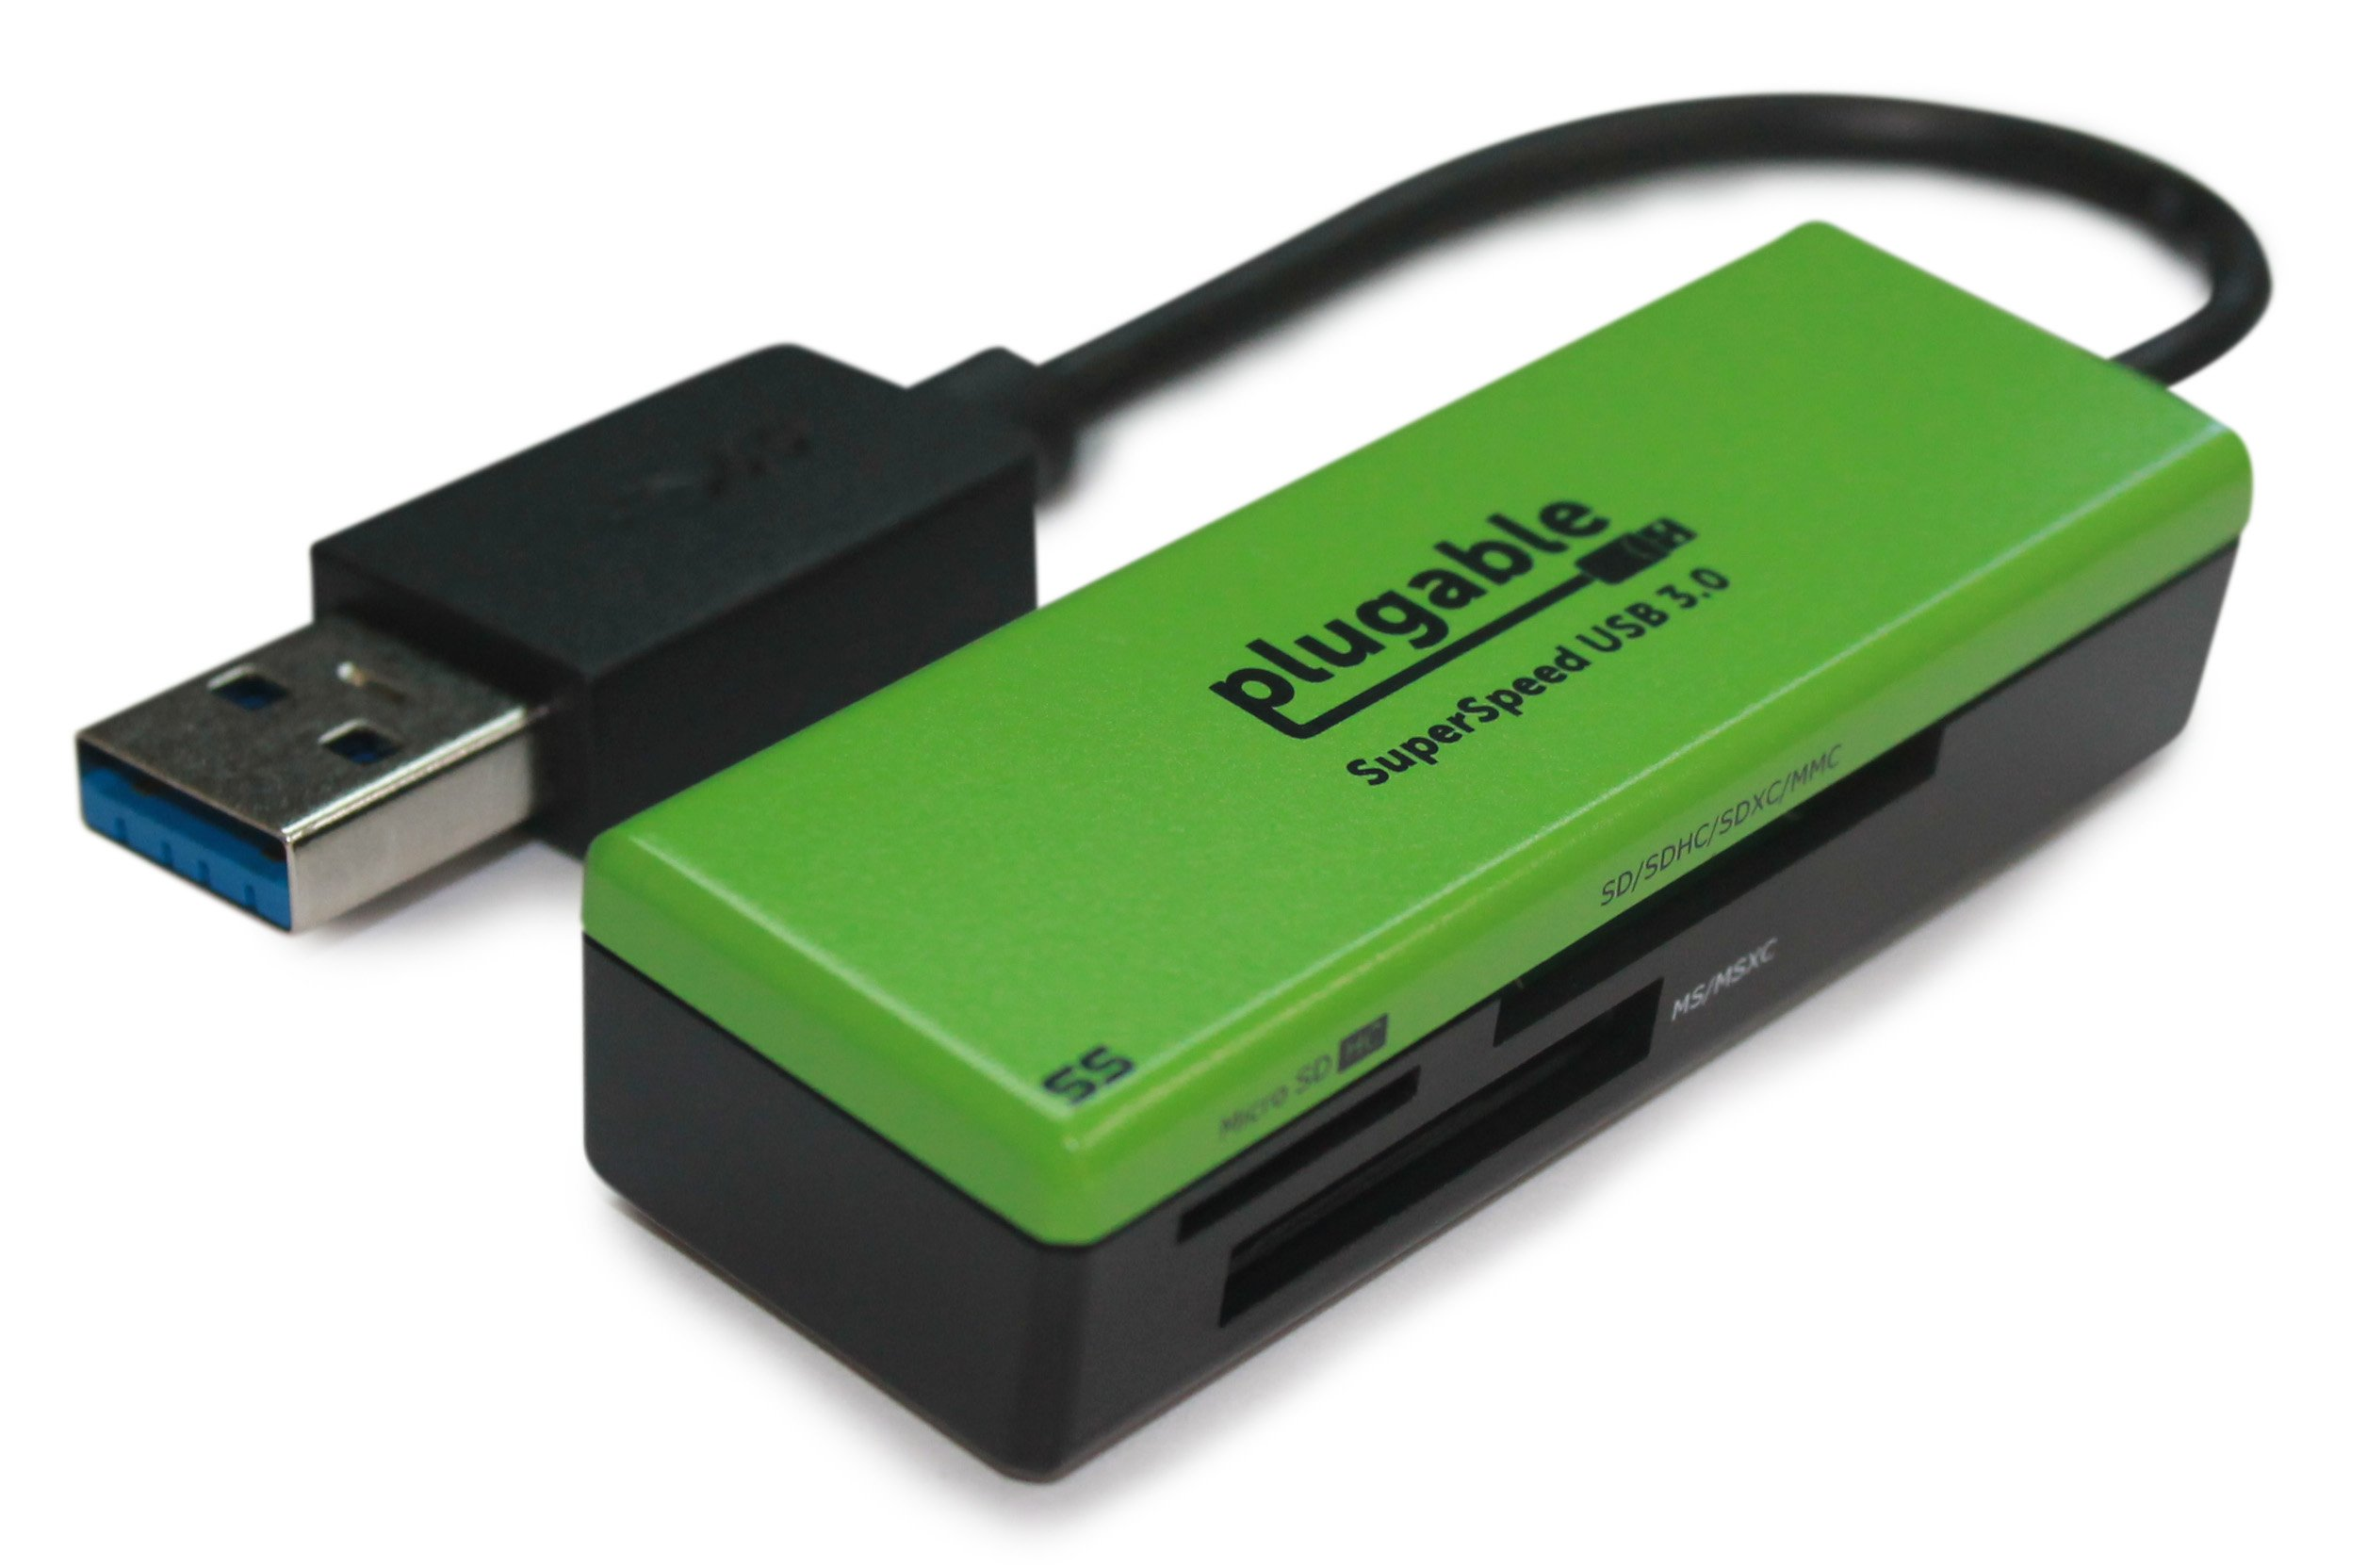 Plugable SuperSpeed USB 3.0 Flash Memory Card Reader for Windows, Mac, Linux, and Certain Android Systems - Supports SD, SDHC, SDXC, Micro SD / T-Flash, MS, MS Pro Duo, MMC, and more